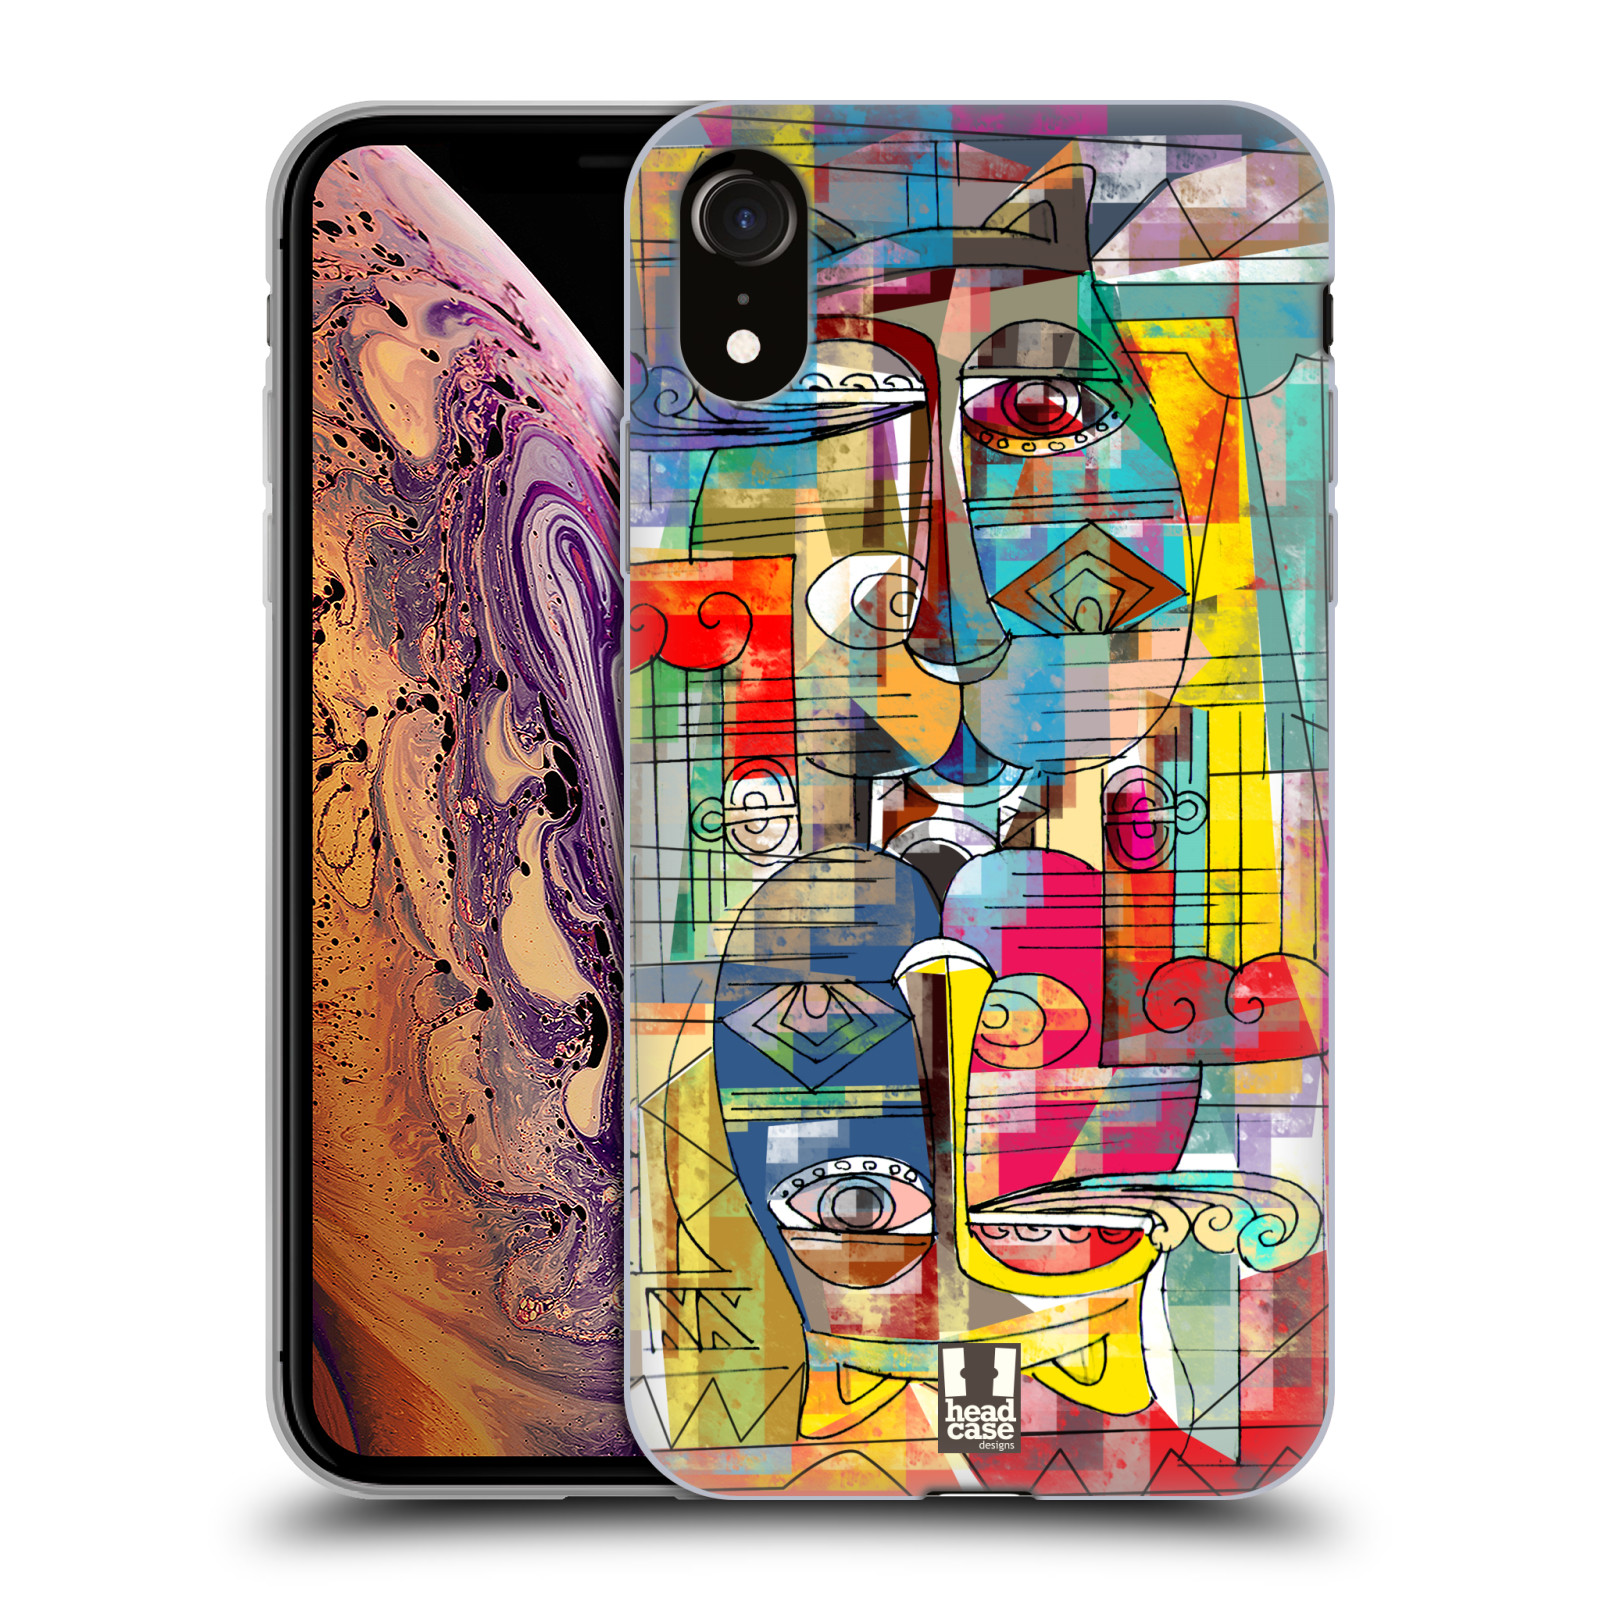 Silikonové pouzdro na mobil Apple iPhone XR - Head Case - AZTEC MANX